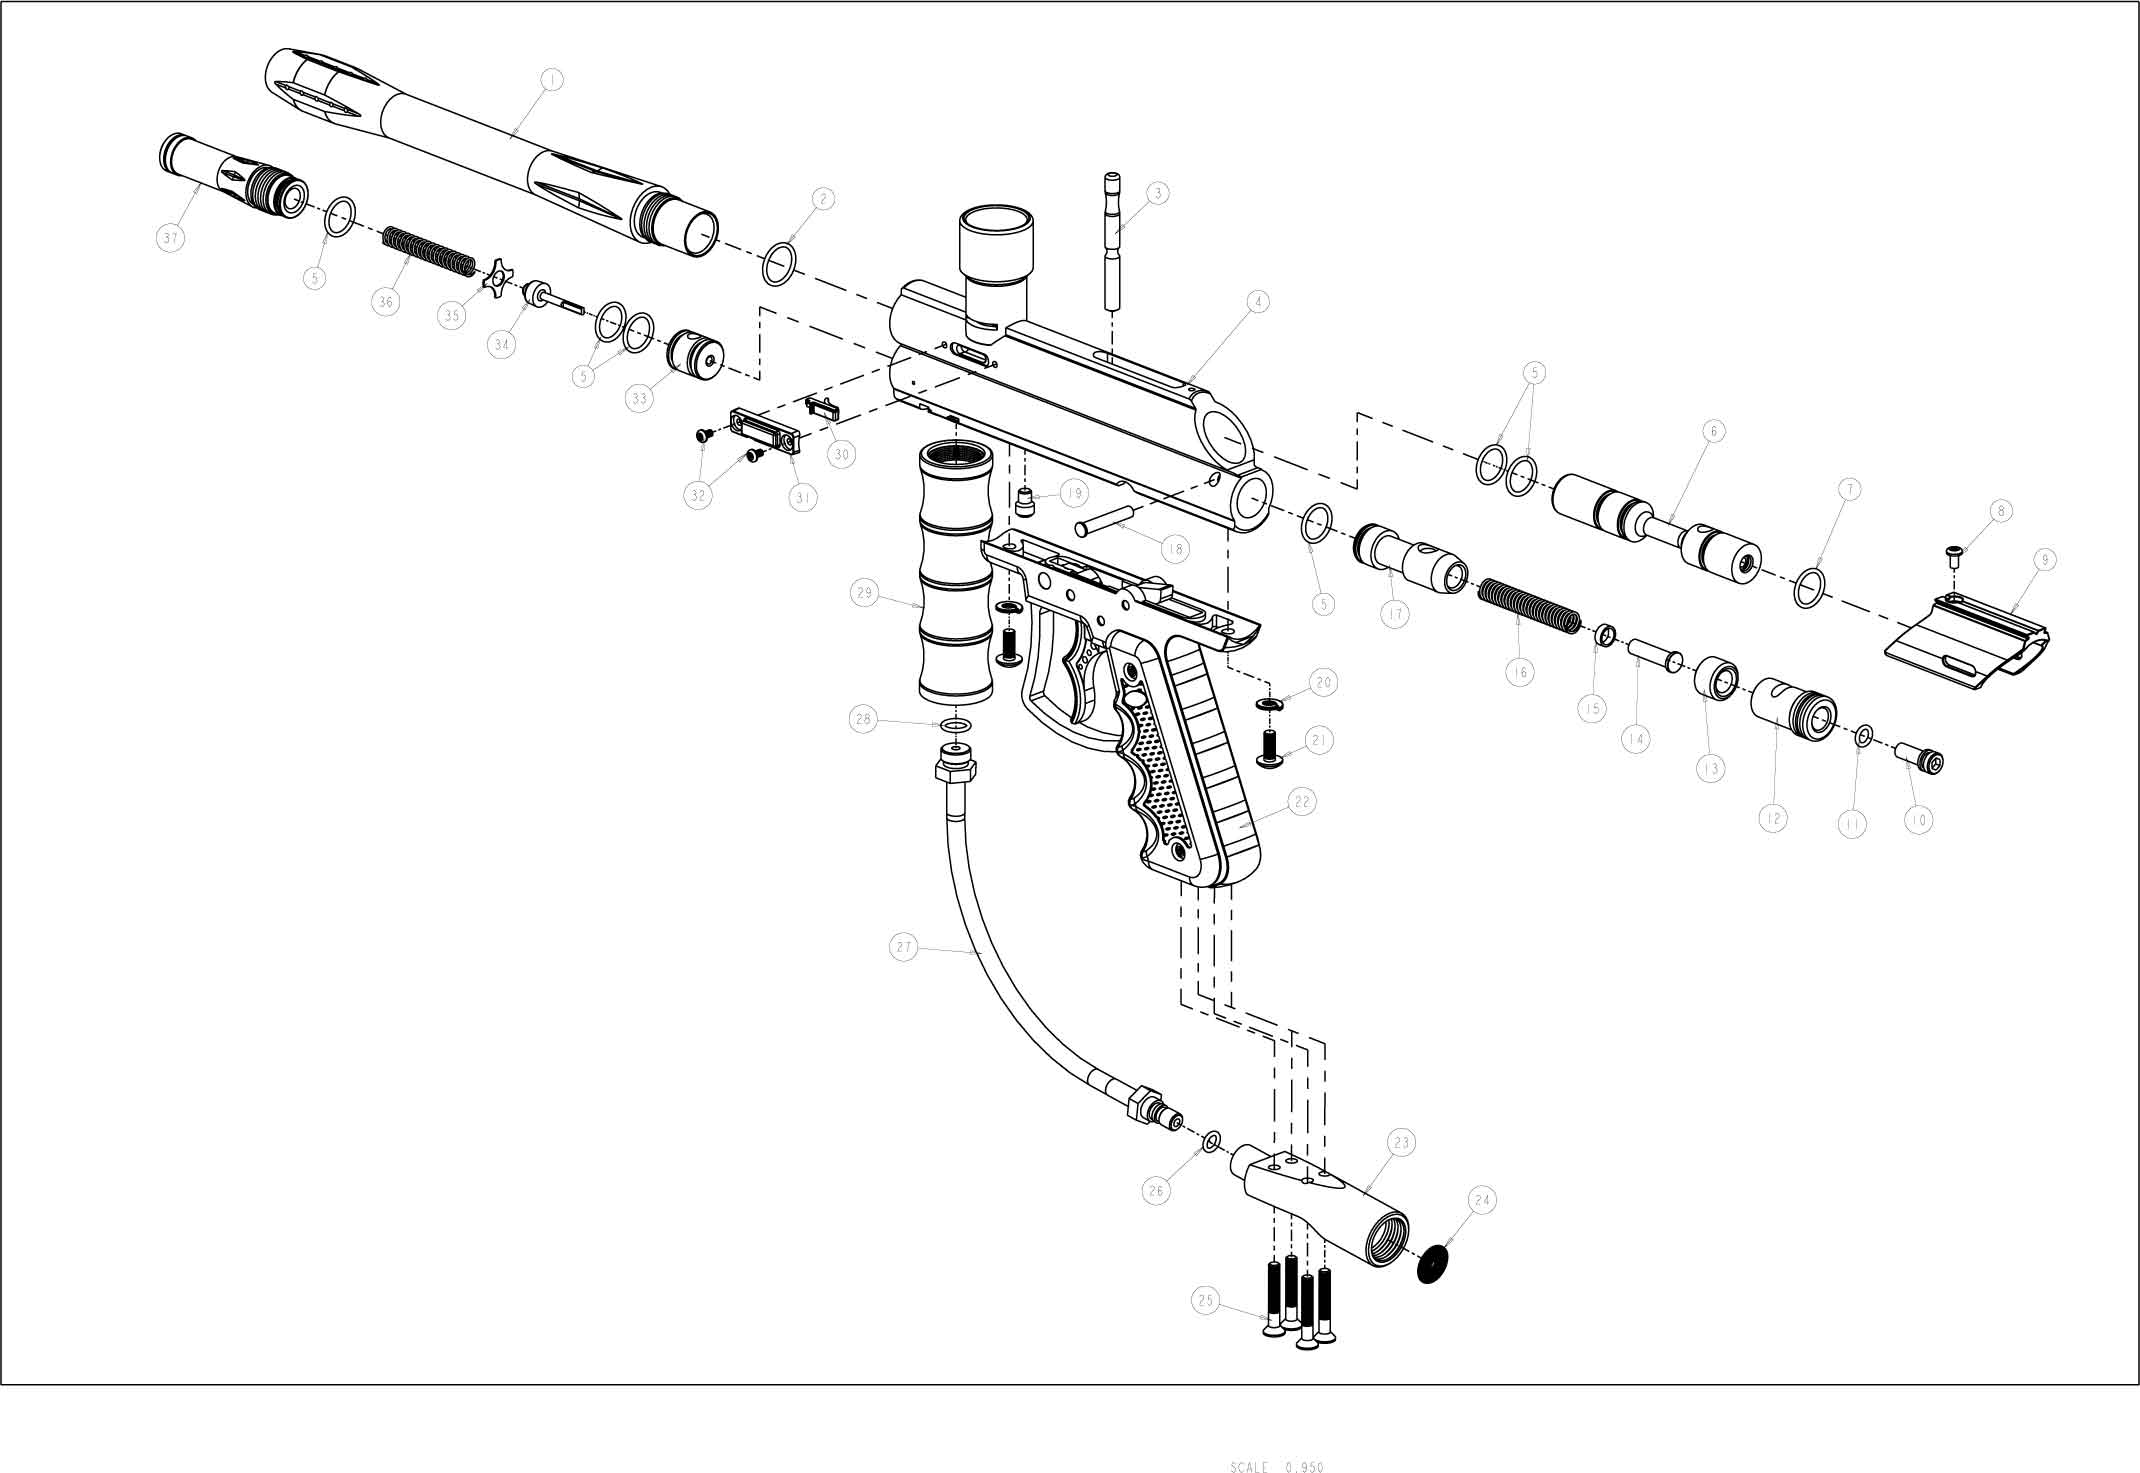 ViewLoader Prodigy E-Grip Gun Diagram